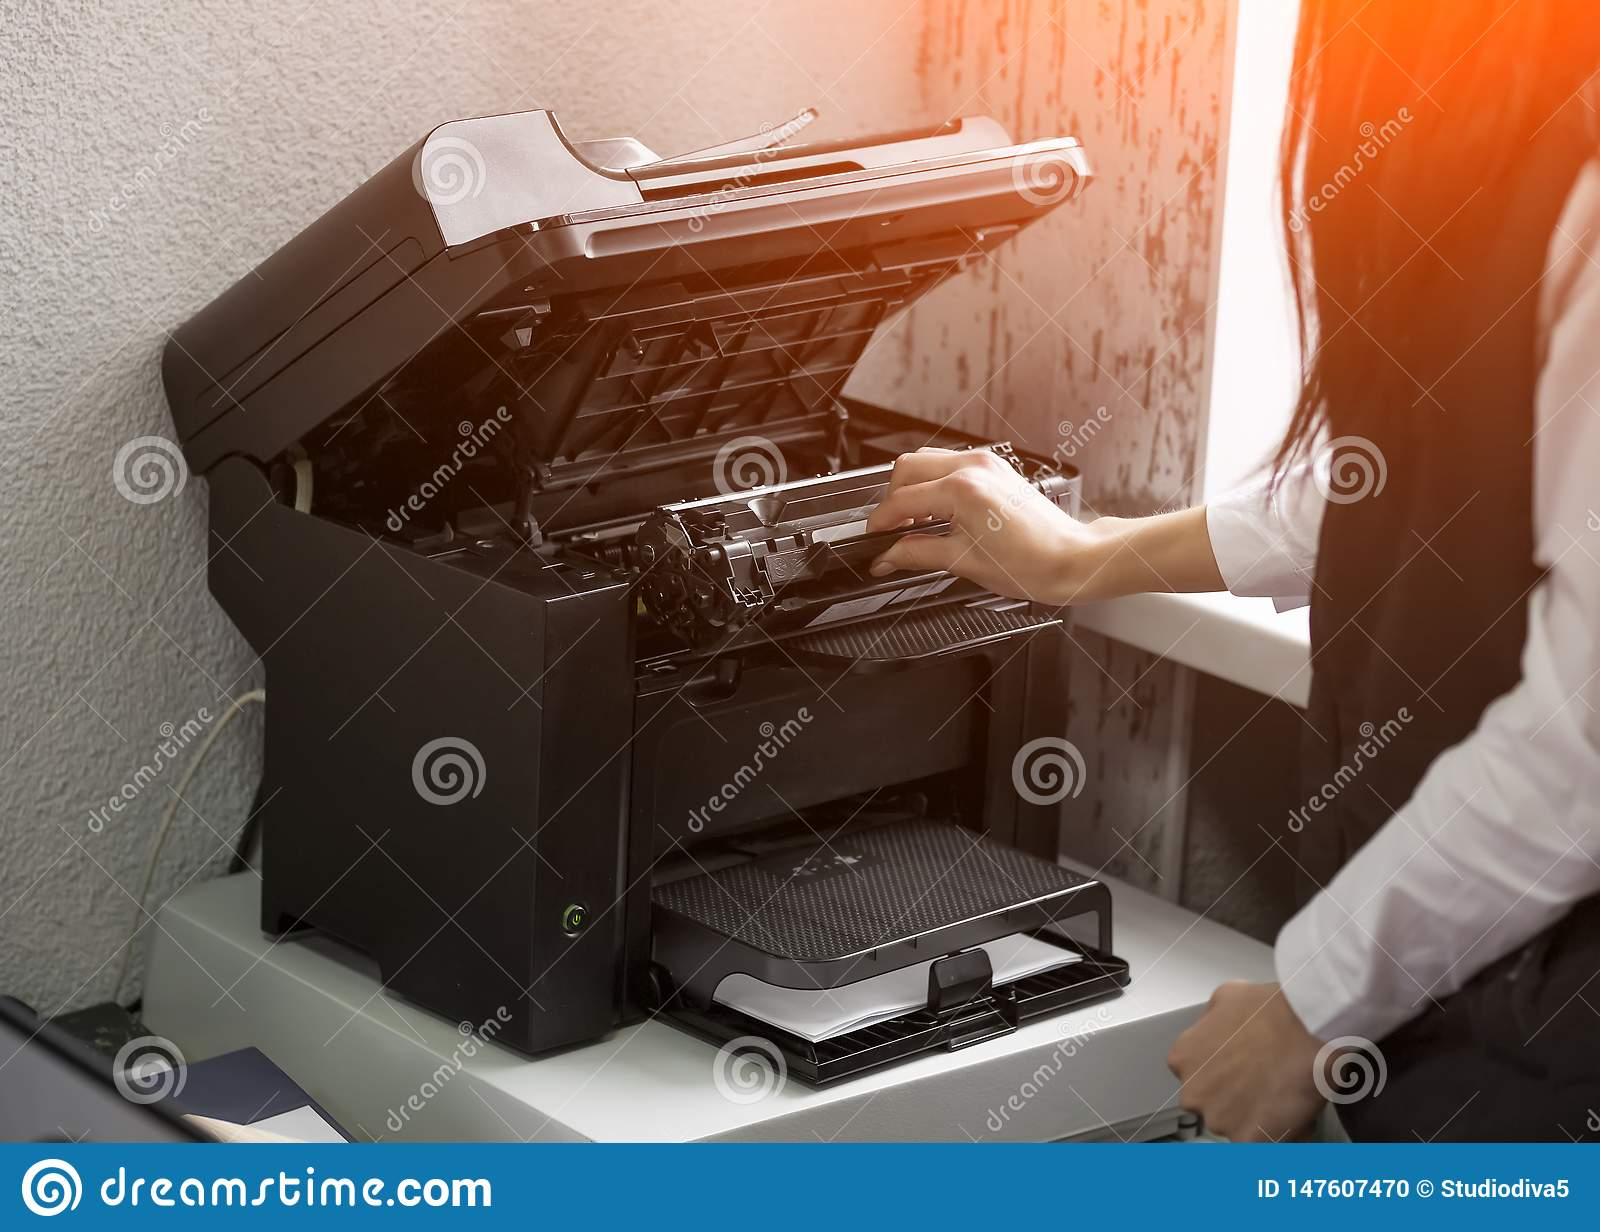 Office worker change the cartridge in a laser printer